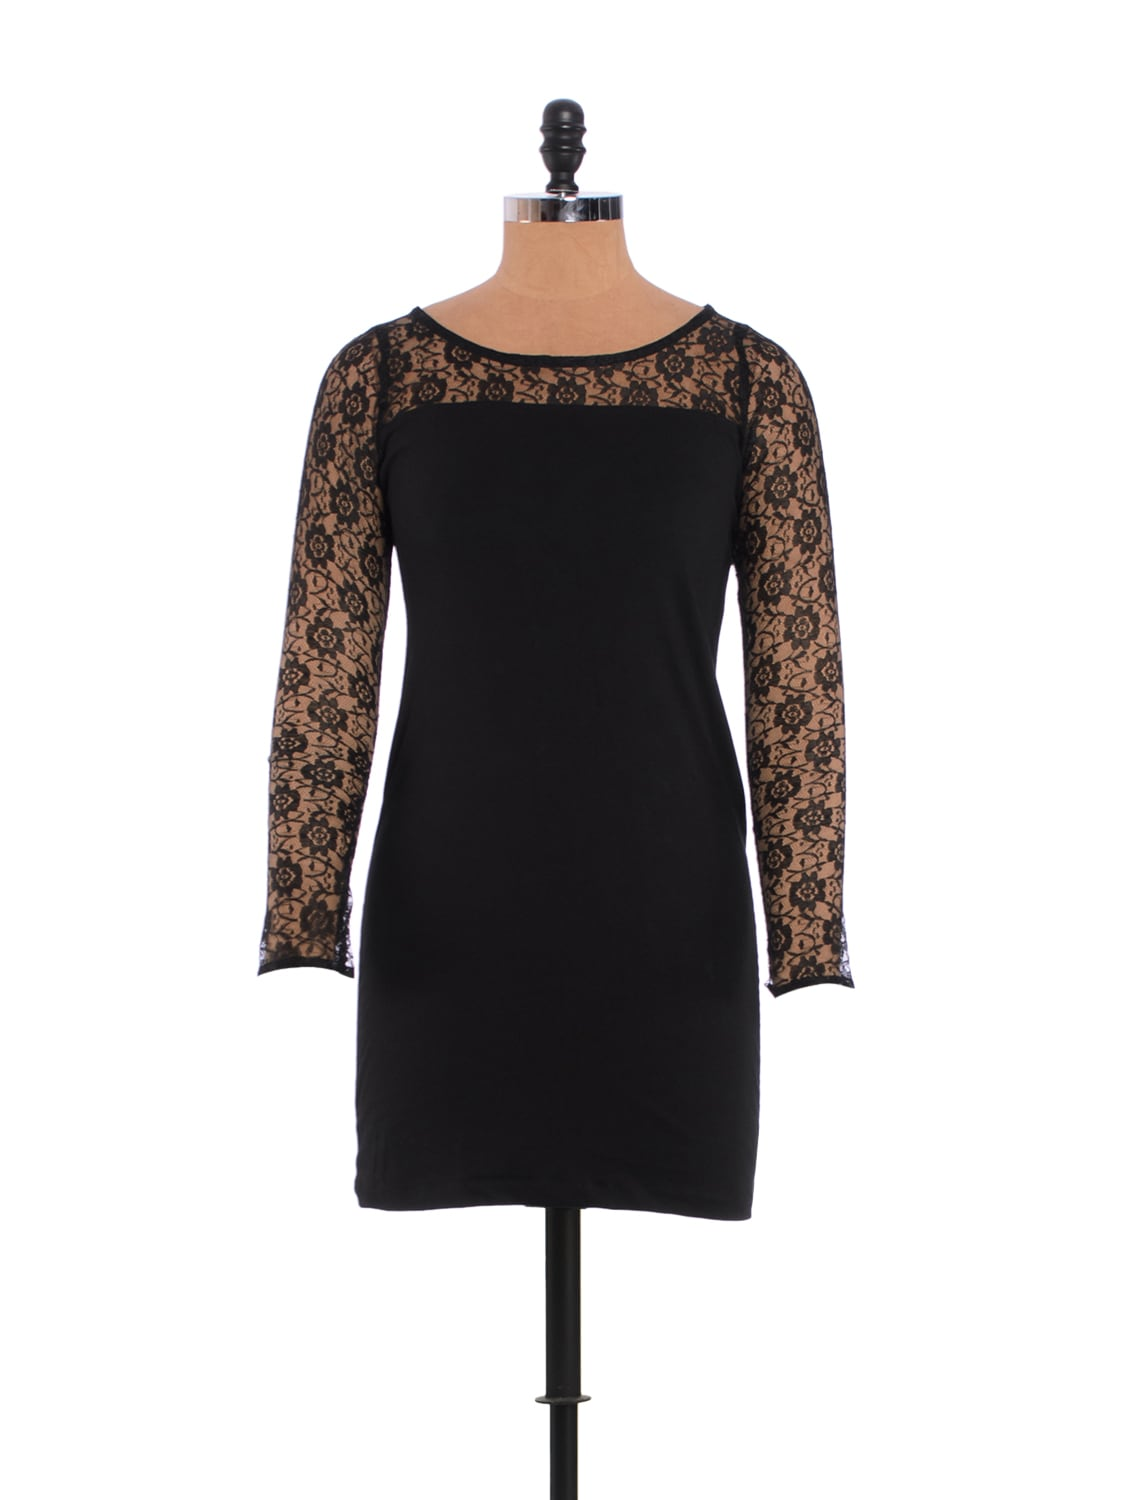 Little Black Dress With Lacey Shoulders - Xniva